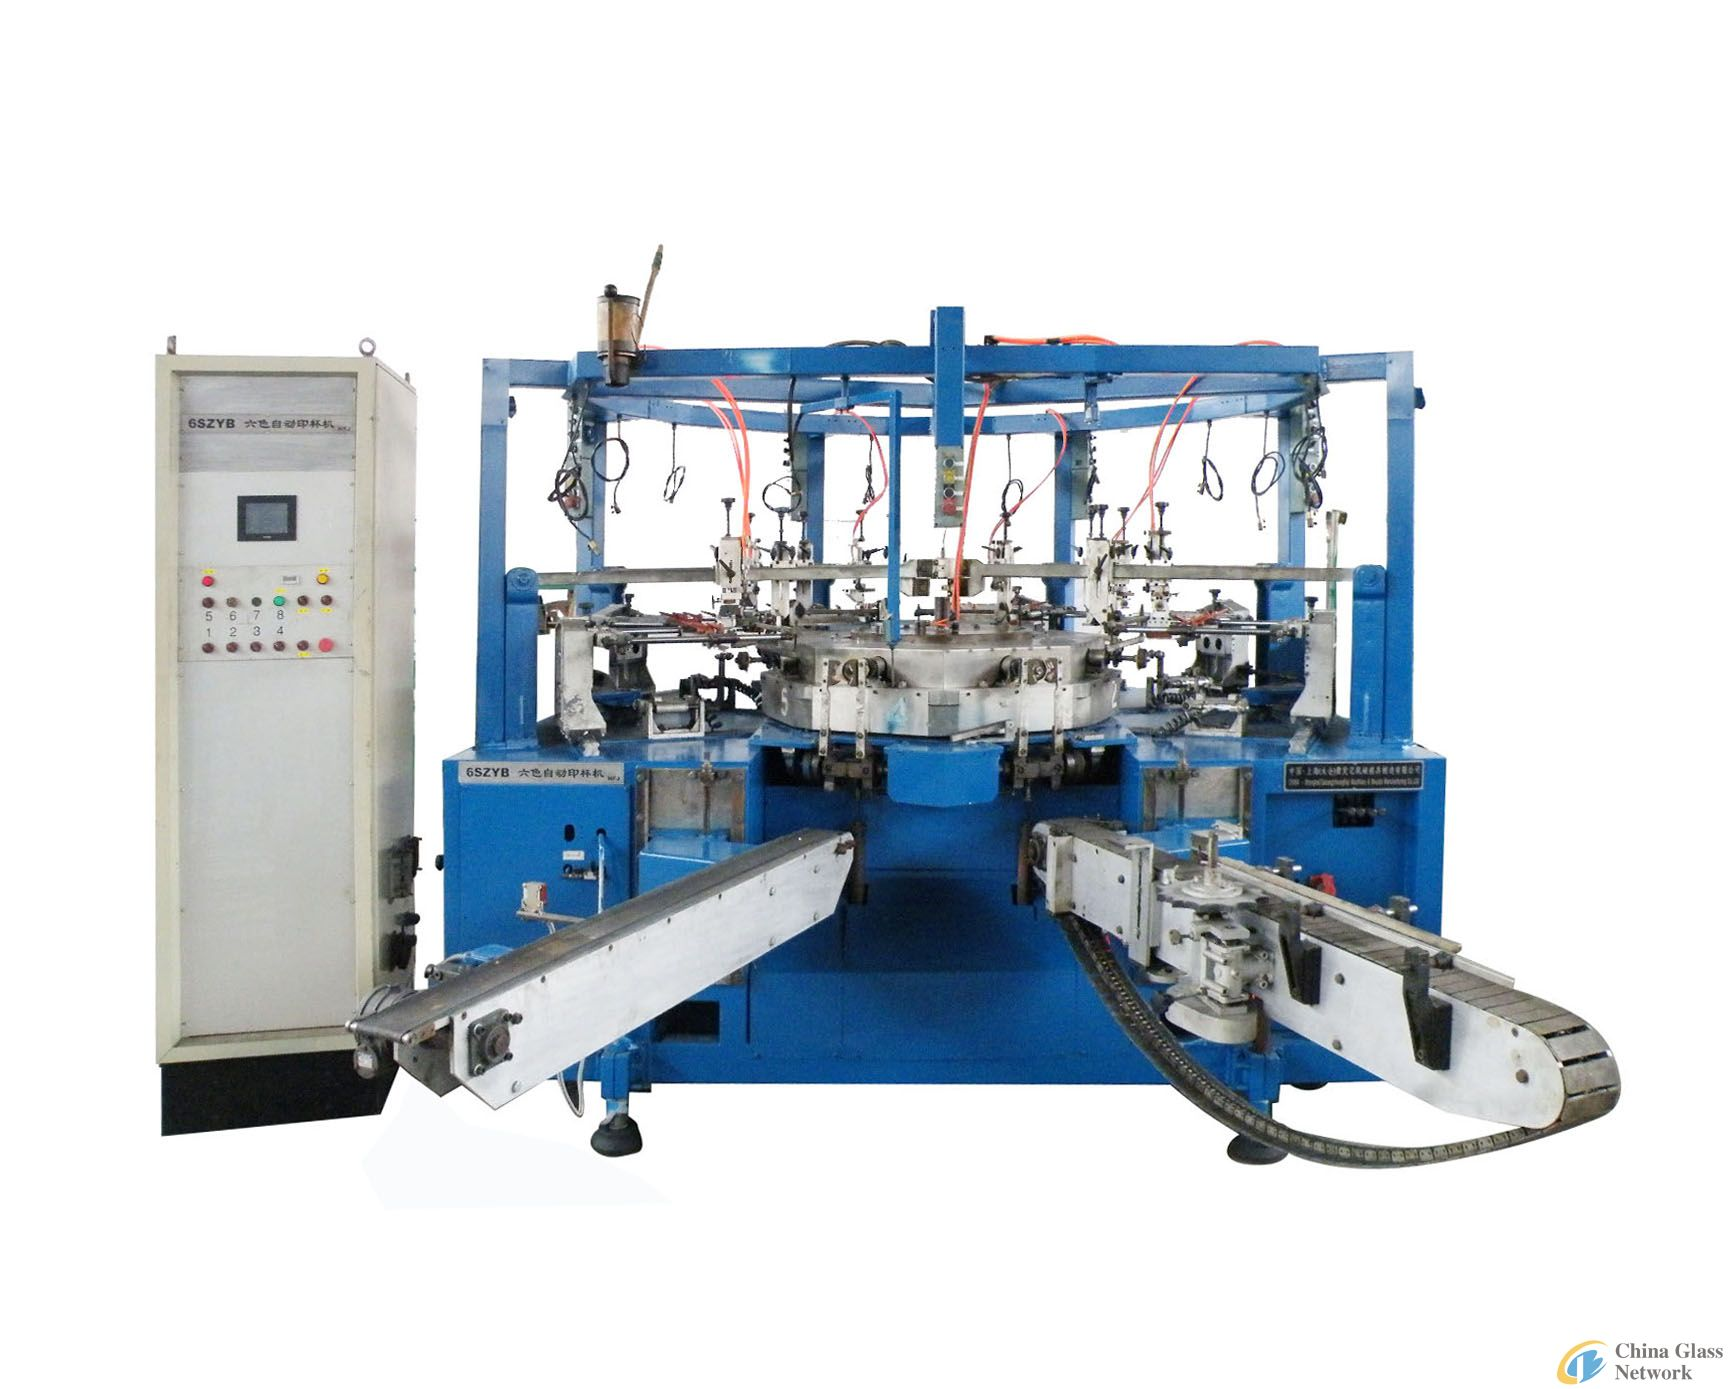 6SZYB 6-color Automatic Printing Machine